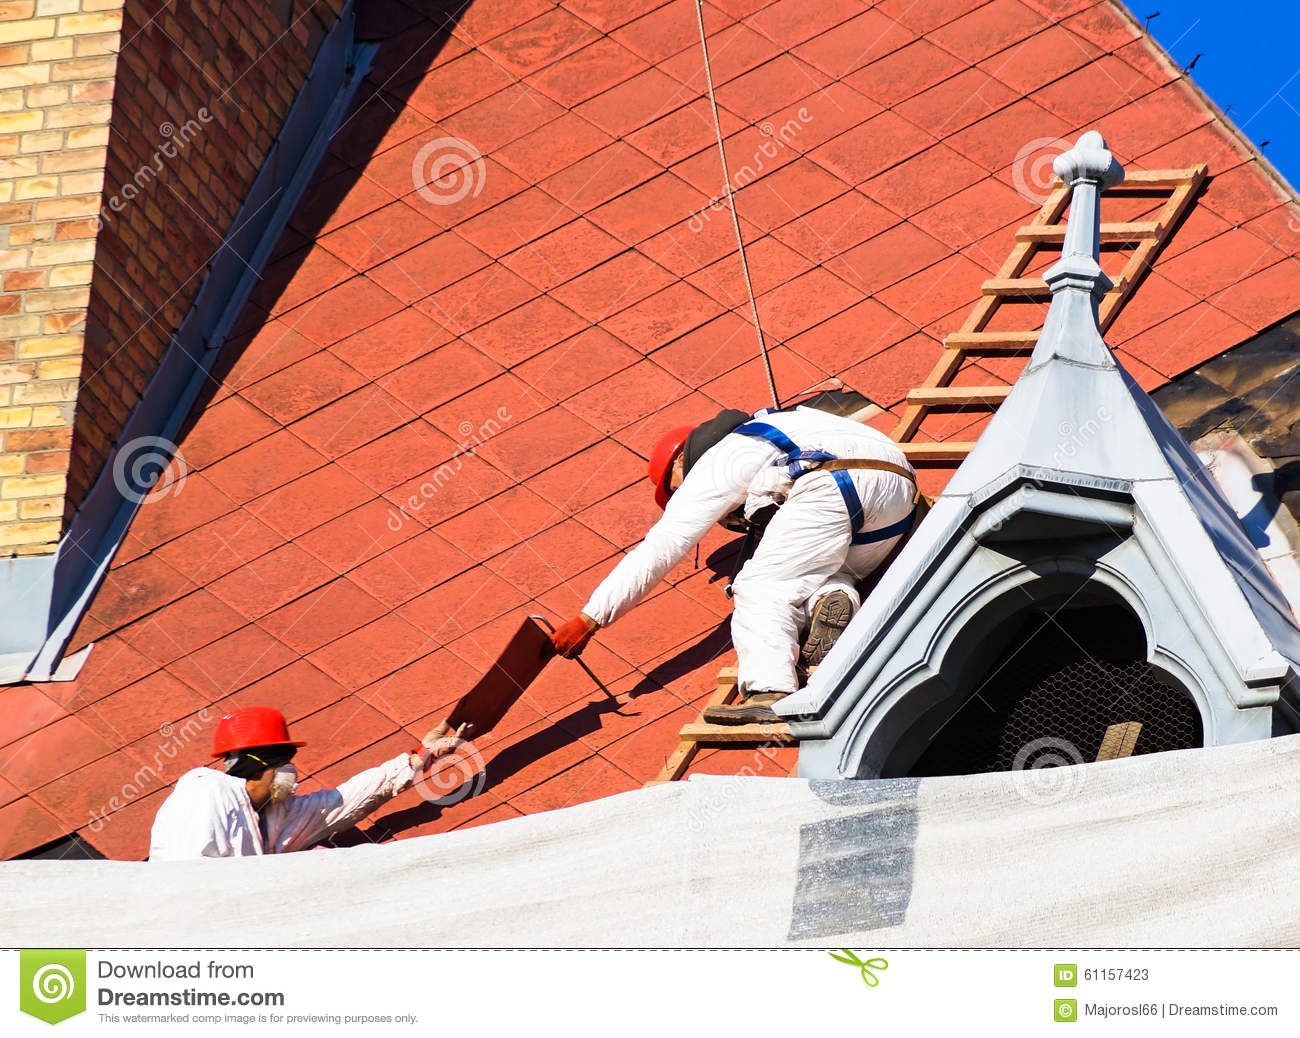 Roofers are working